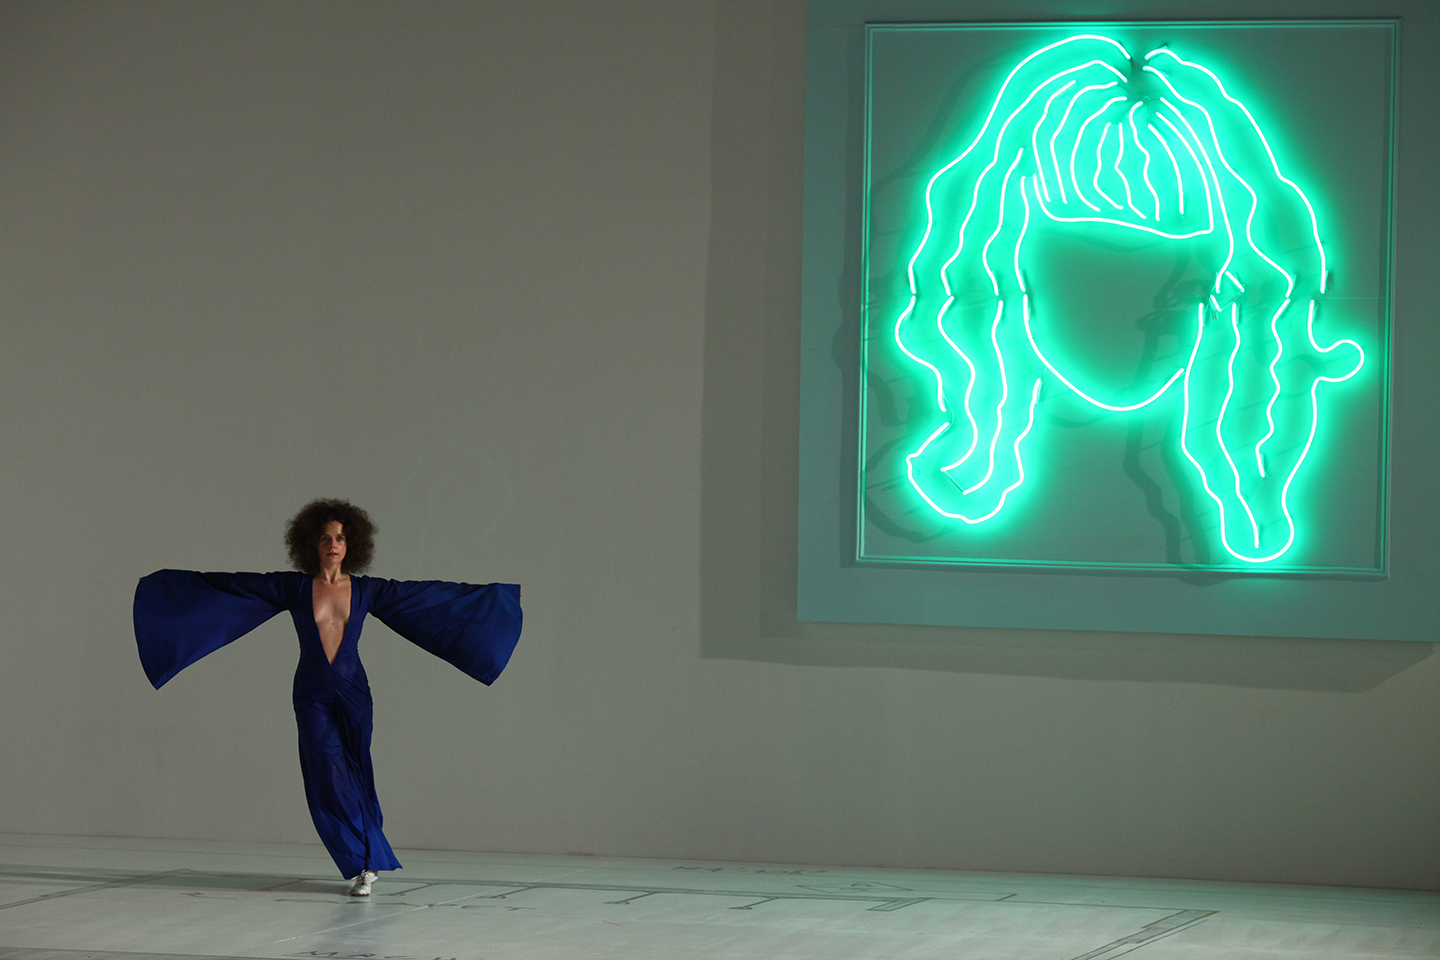 Sarah Michelson, Devotion Study #1 — The American Dancer, February 26, 2012 at 2012 Whitney Biennial. Photo: Paula Court